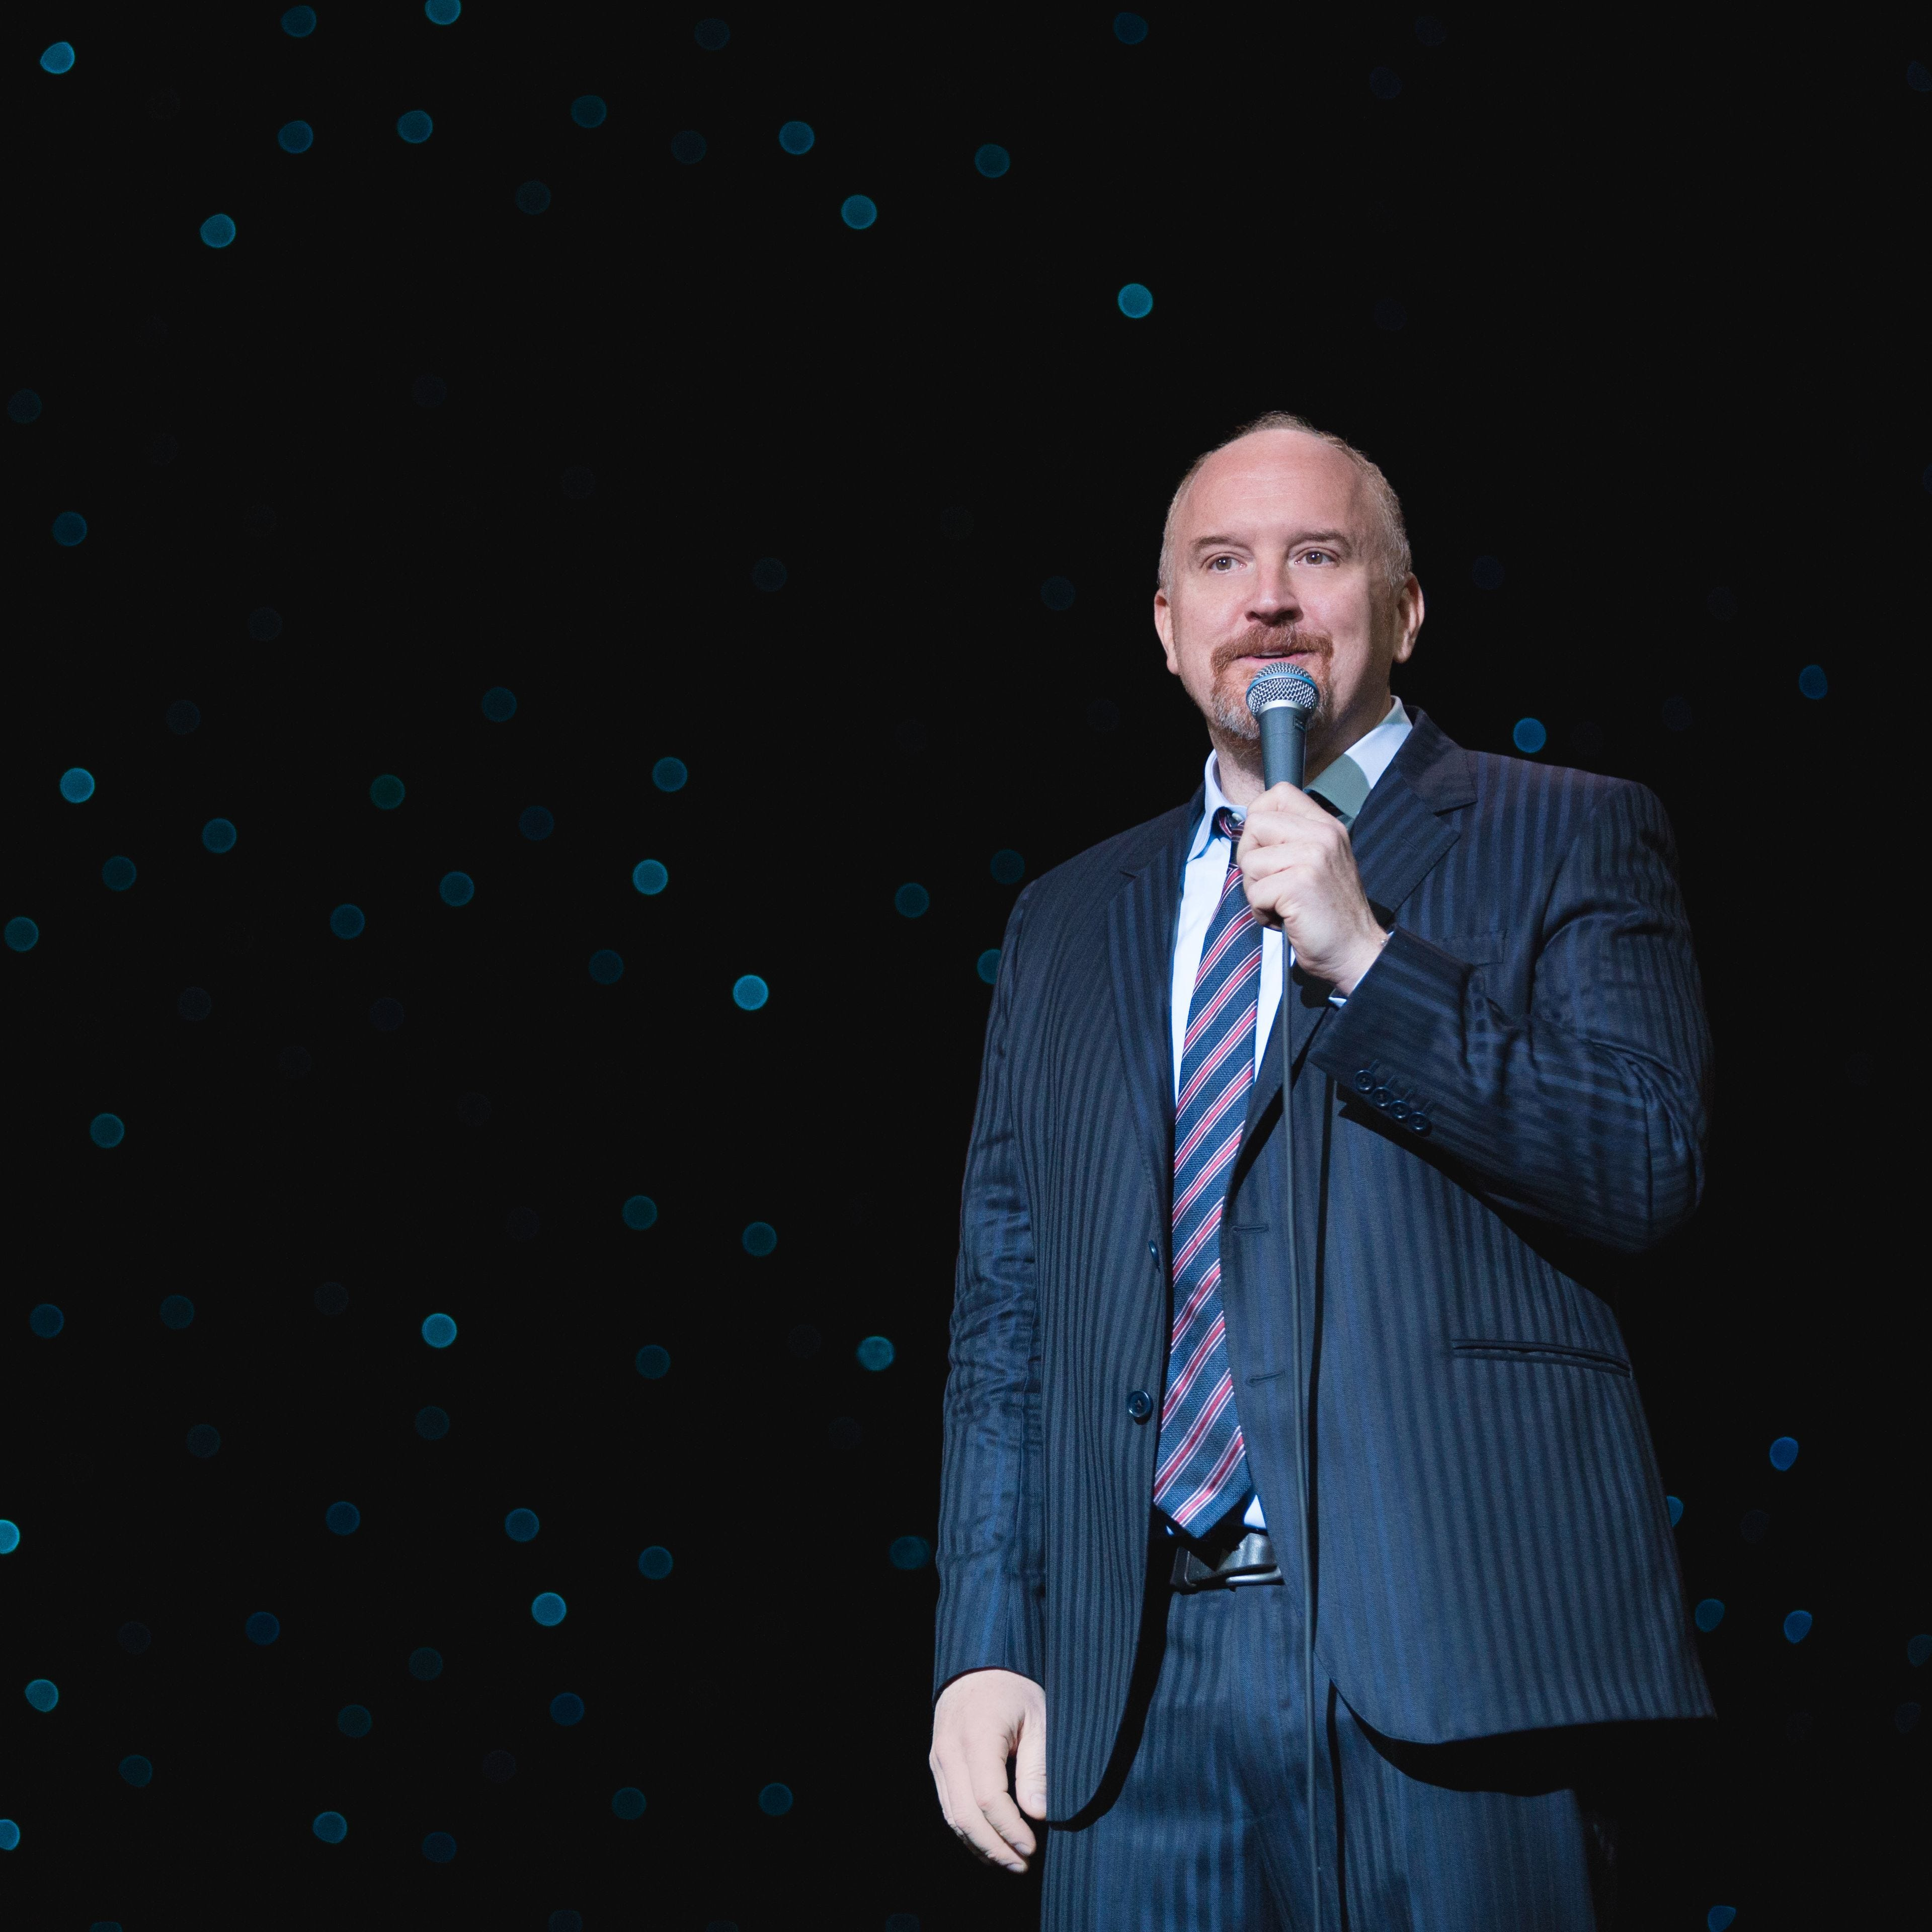 Louis C.K. jokes about his sexual misconduct at Nashville show